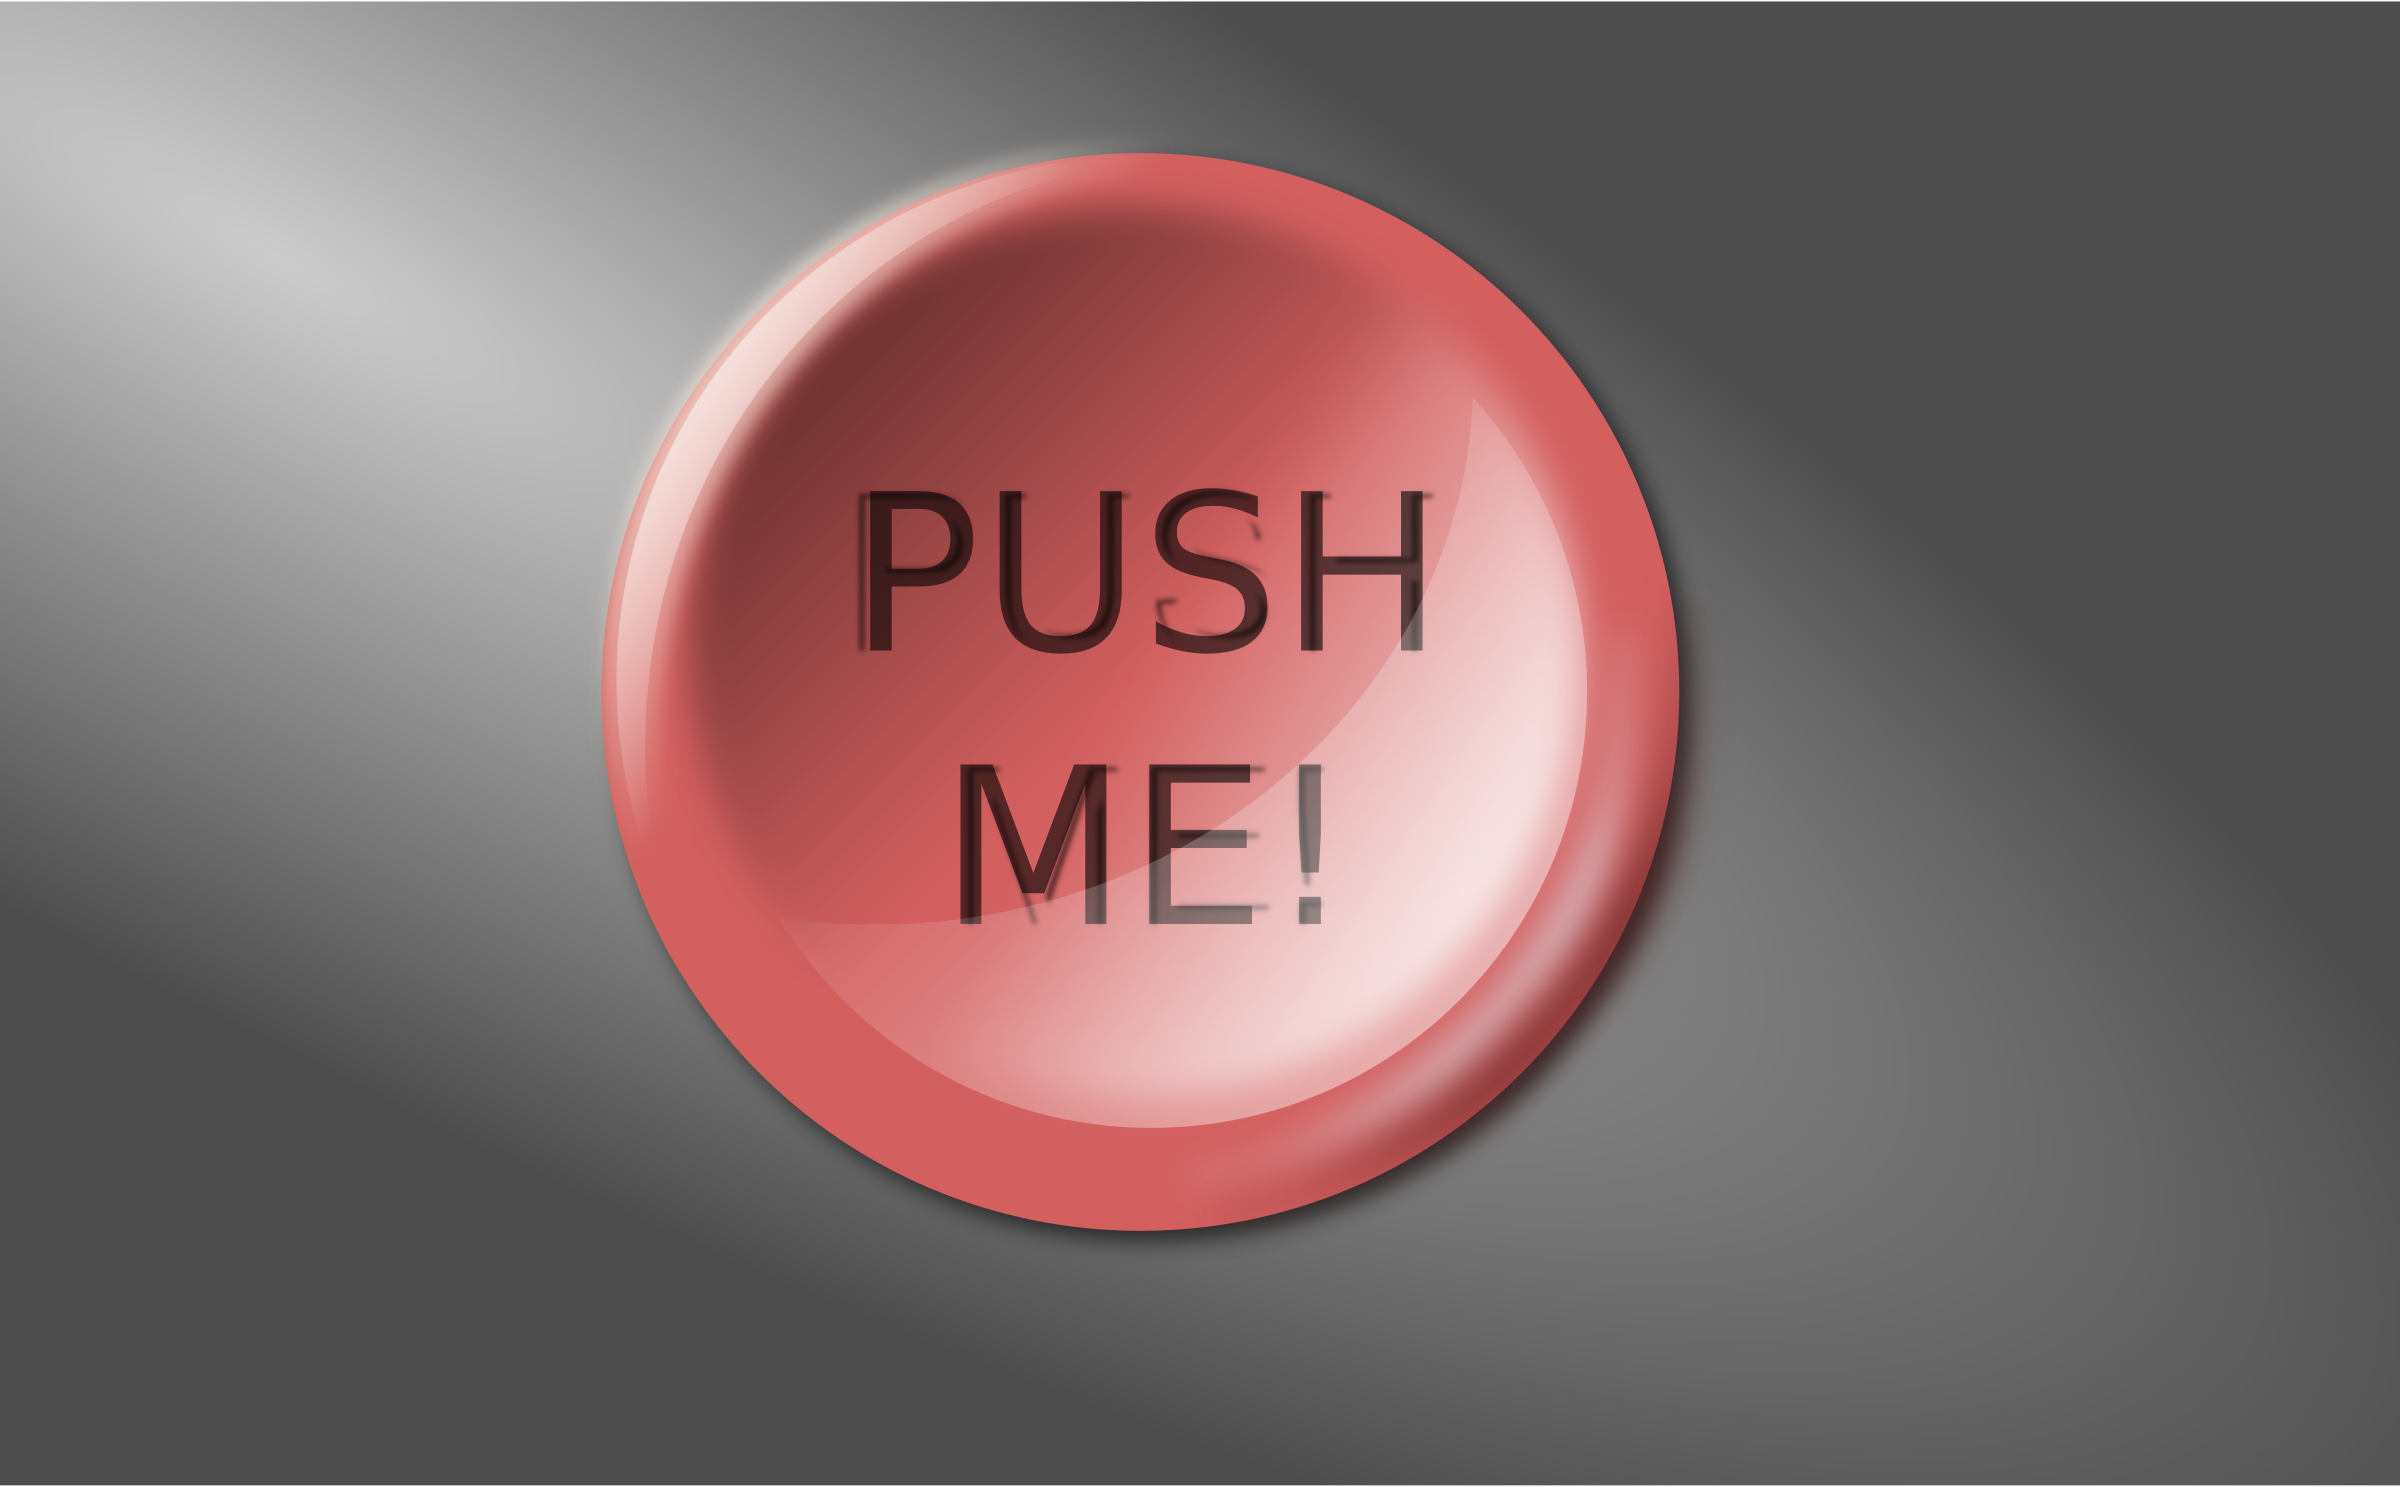 Just PUSH ME by dizzydan92